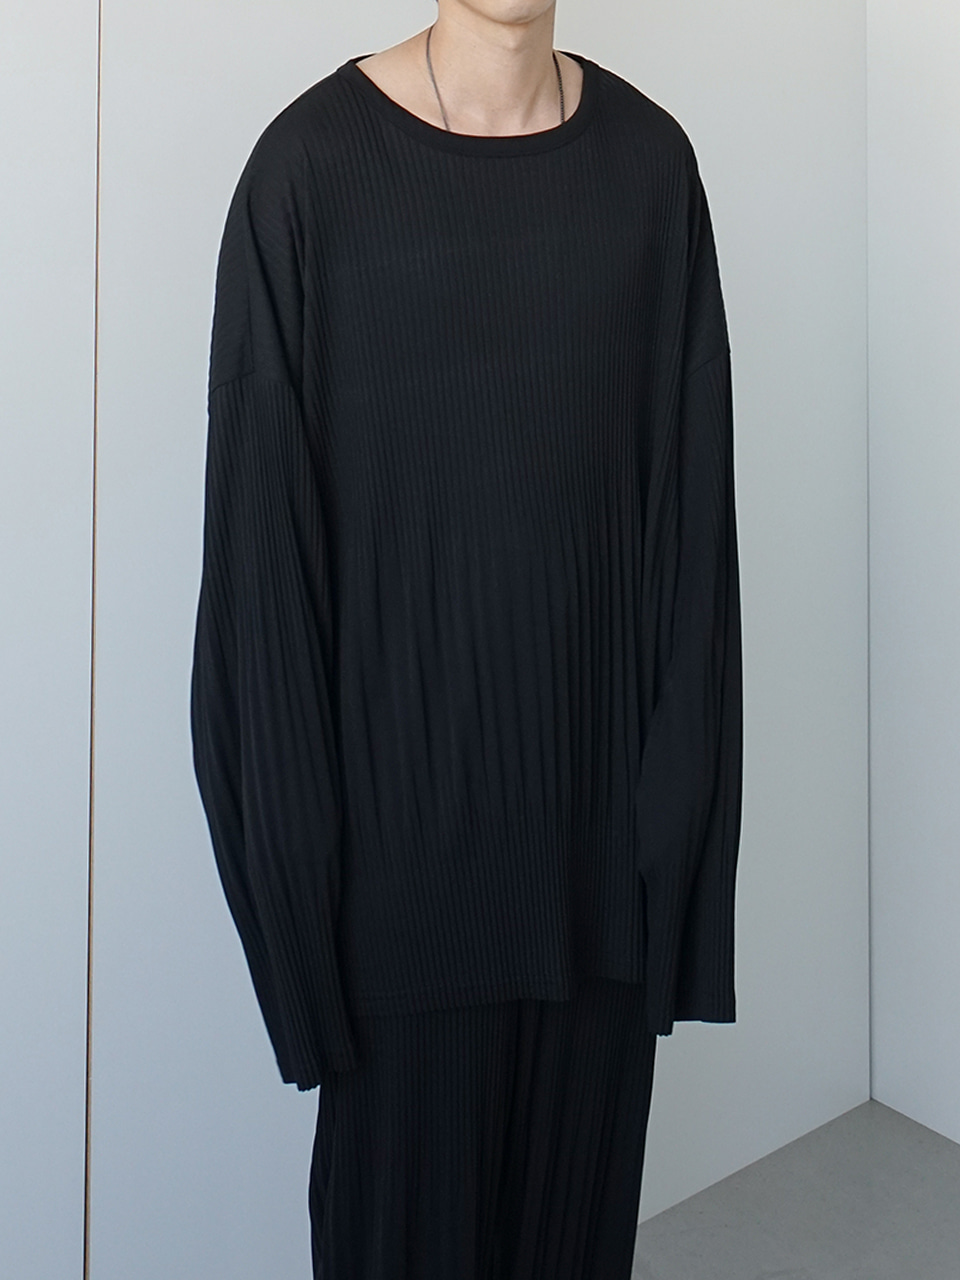 GRD Relaxed Pleats Tee Black